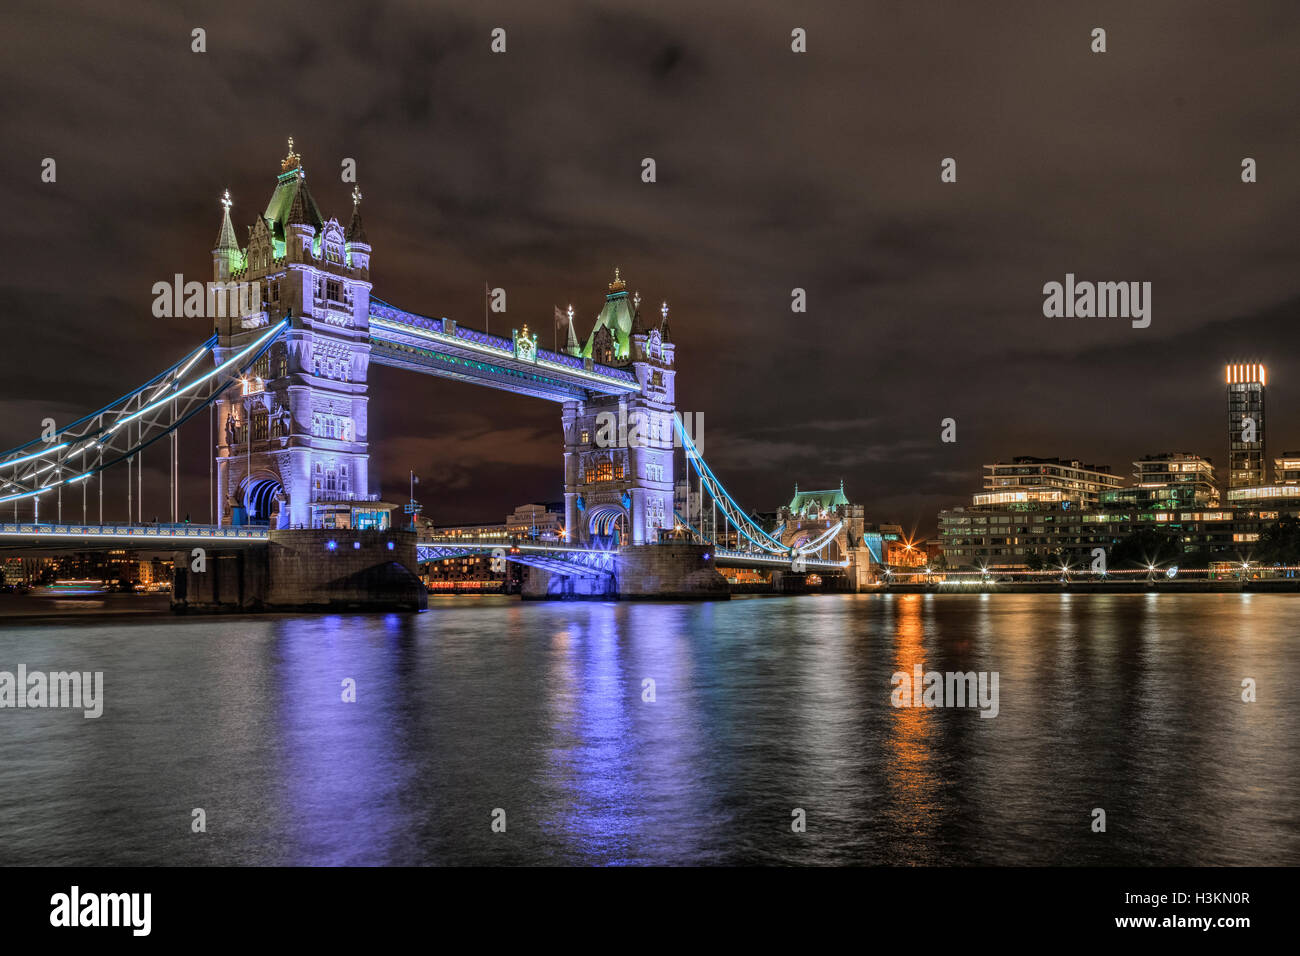 Tower Bridge, London, England, UK - Stock Image